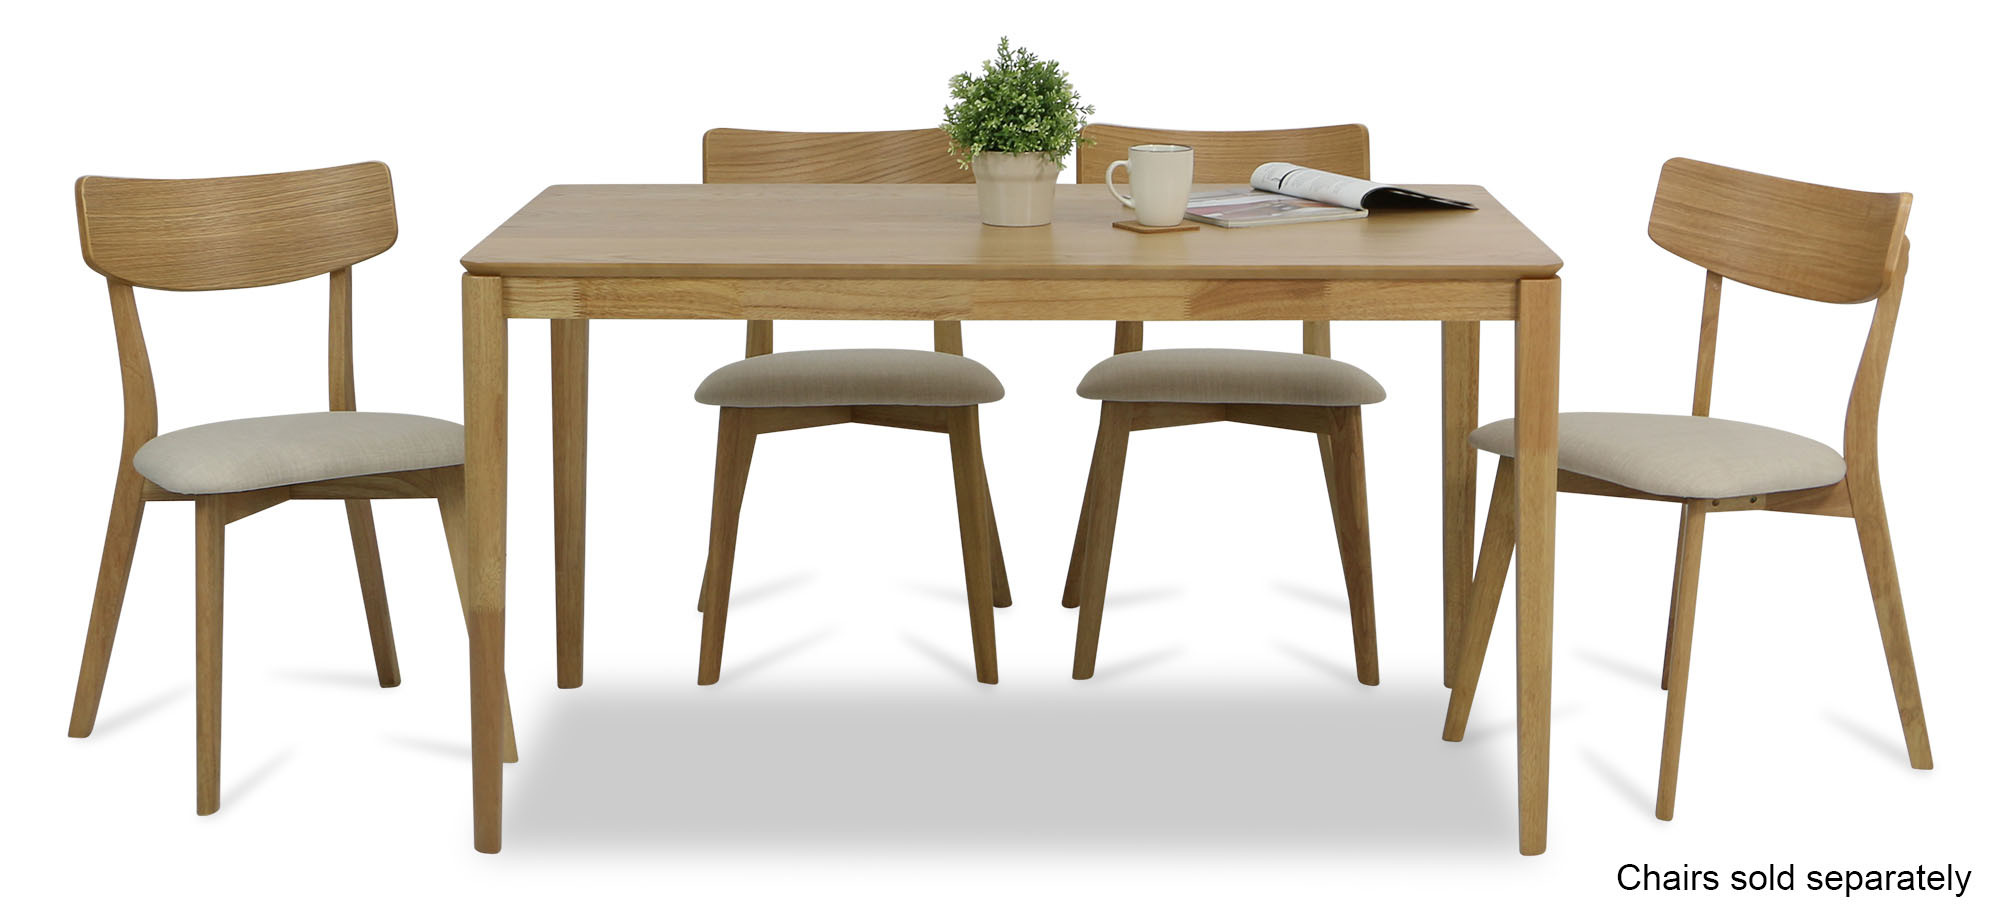 Kitchen Table Oak Image Collections Bar Height Dining